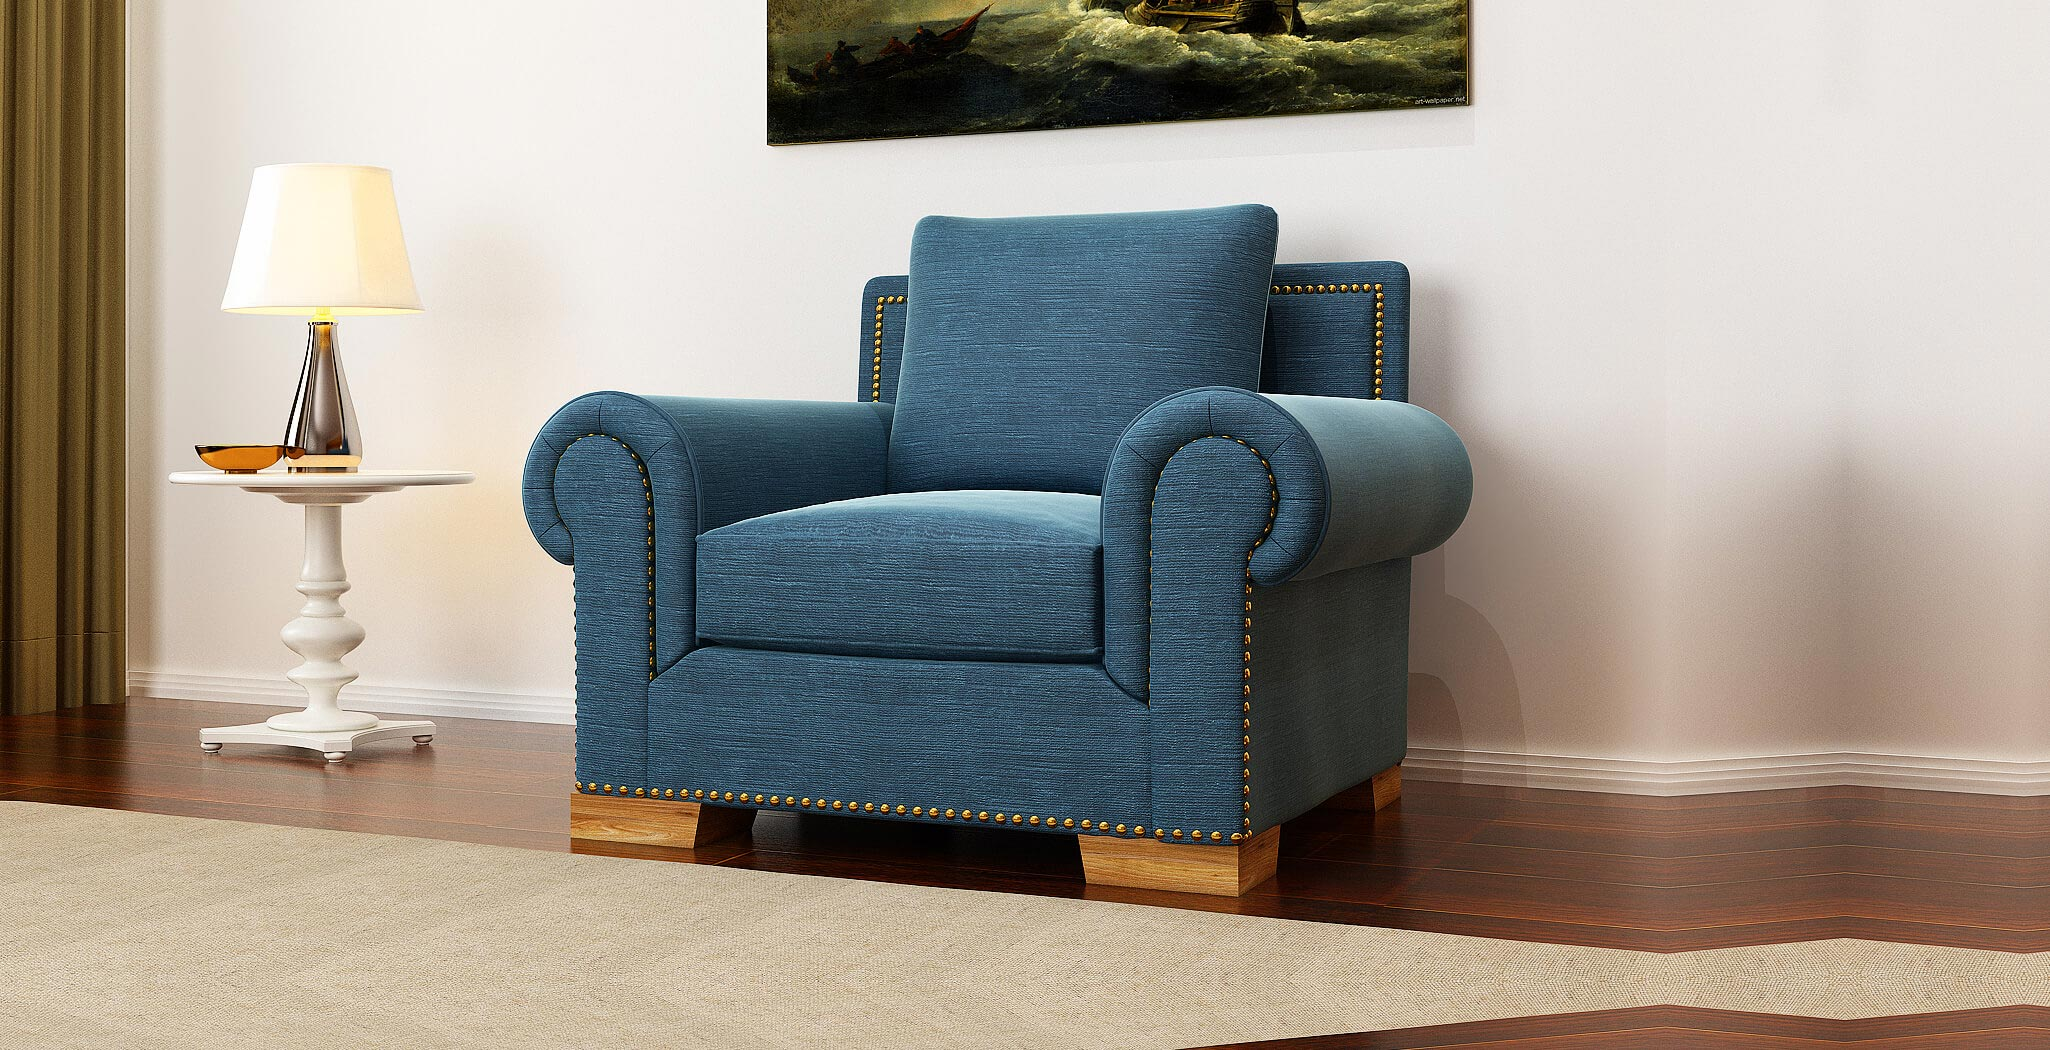 james chair furniture gallery 2